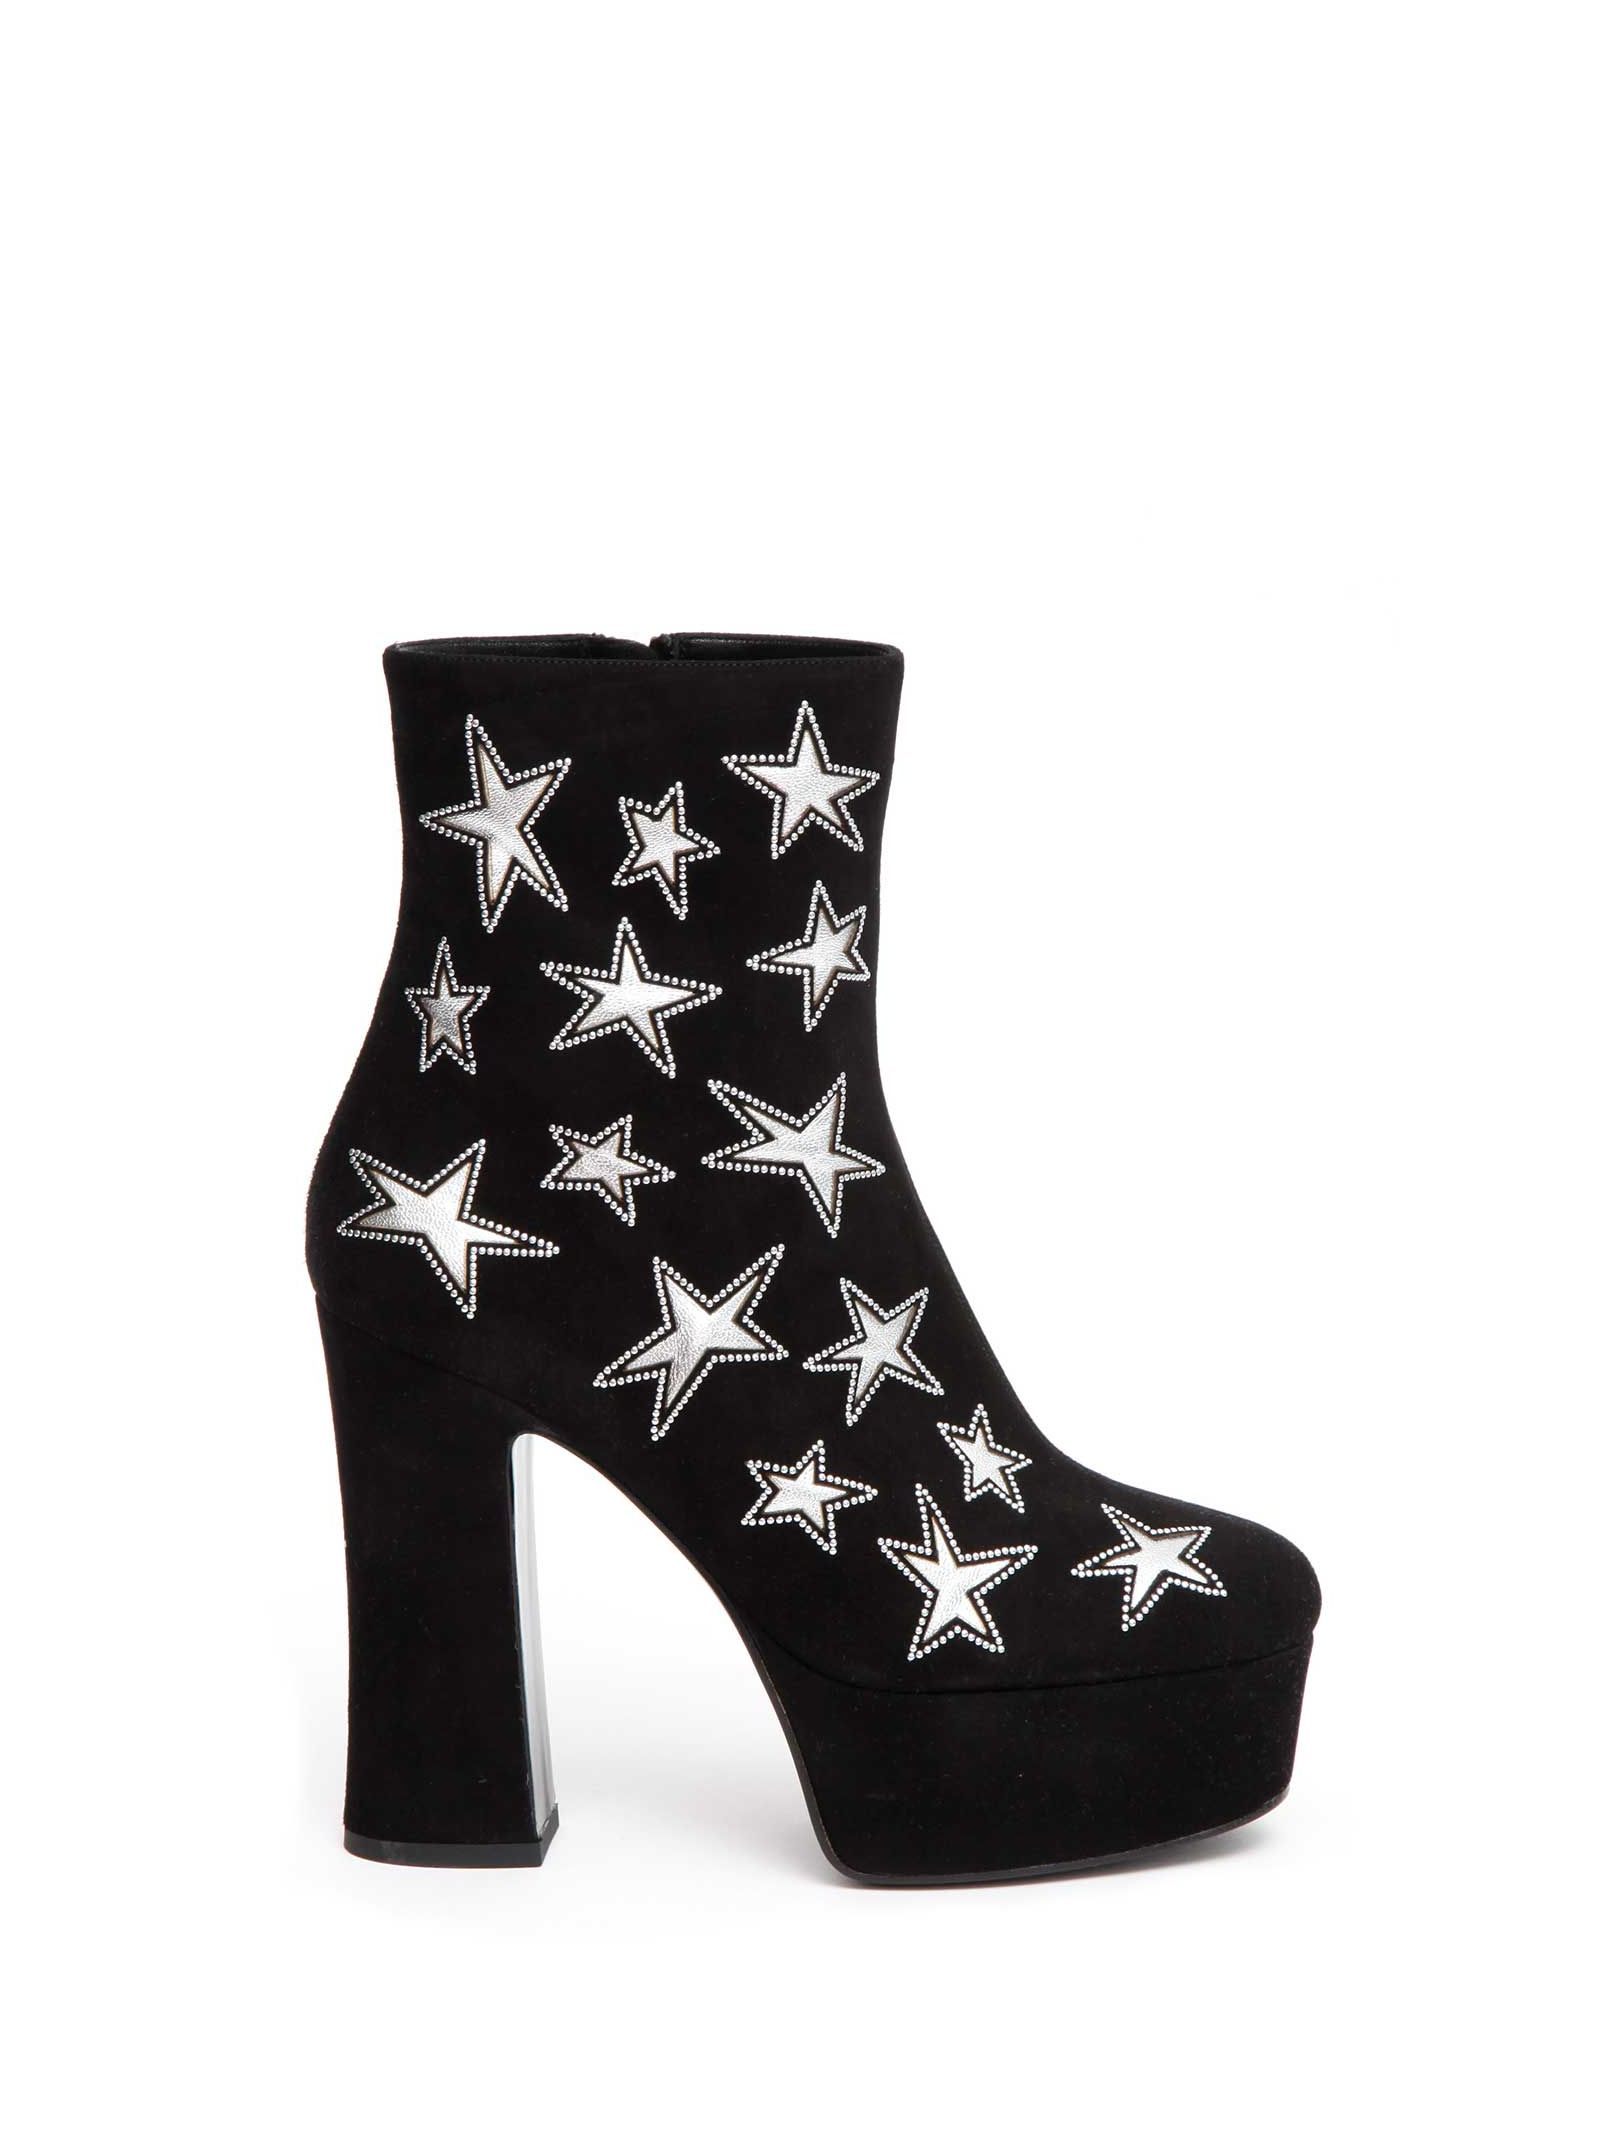 Black suede platform 'Candy 80 star' ankle boots with inlaid stars with micro studs and thick heel from Saint Laurent.